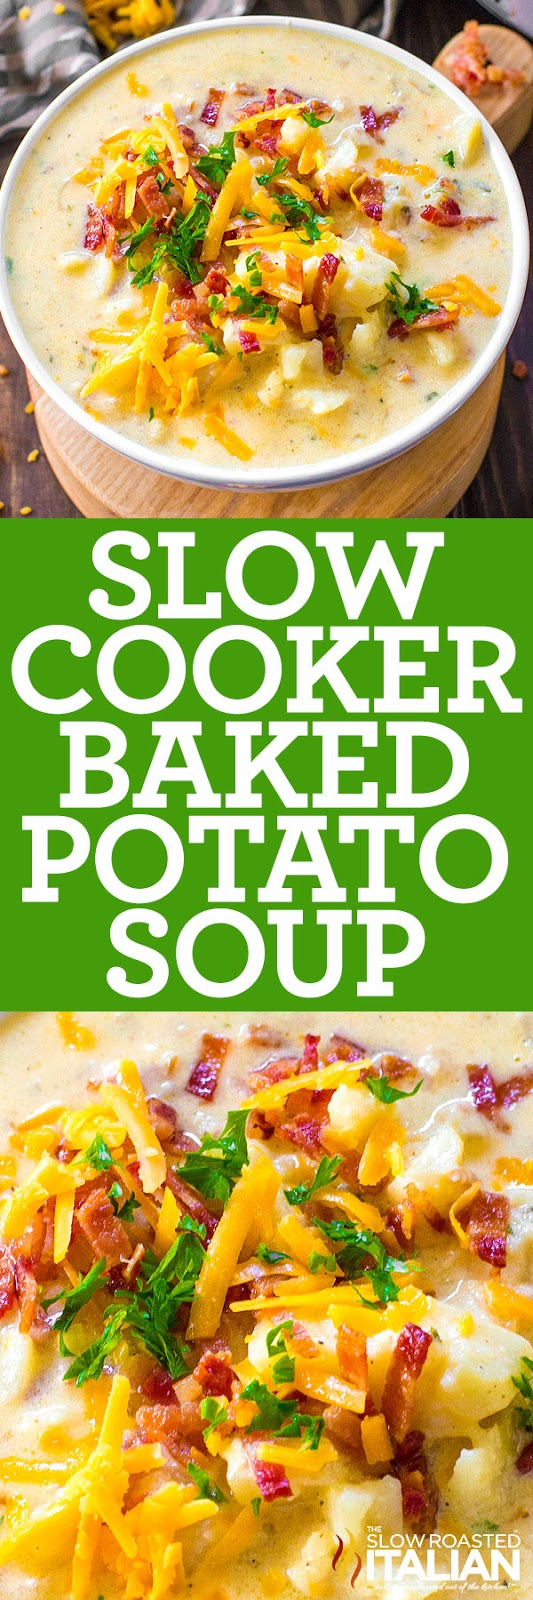 titled image (and shown): Slow Cooker Baked Potato Soup